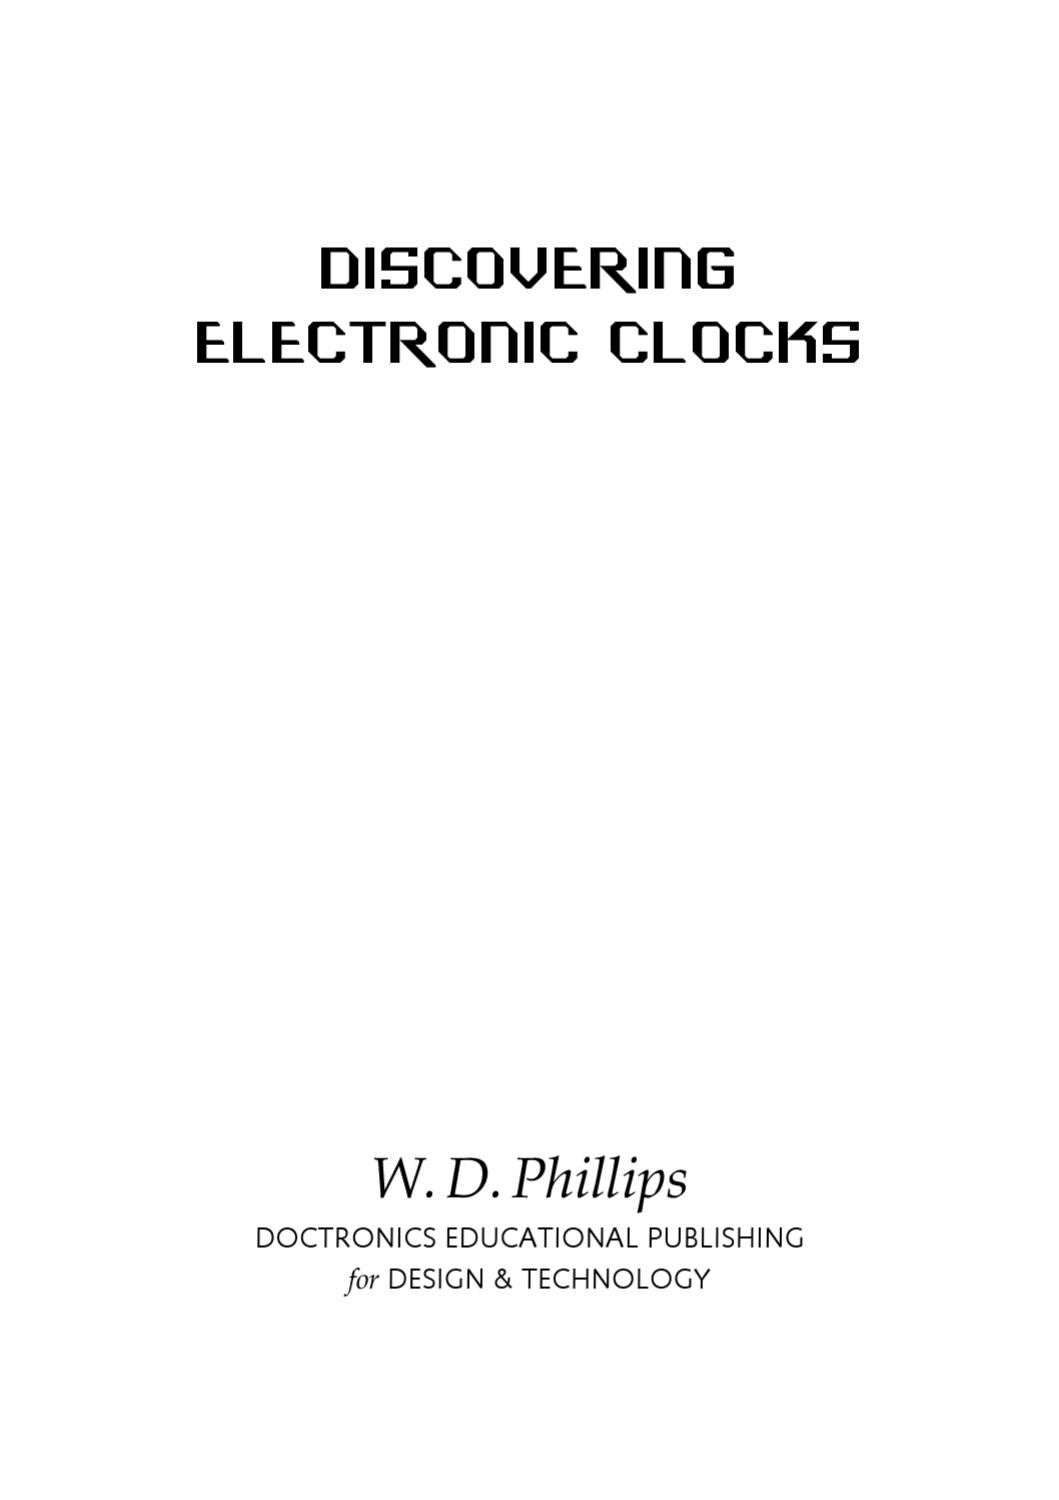 Discovering Electronic Clocks By William D Phillips Issuu How To Make Interesting Ic 4060 Circuits